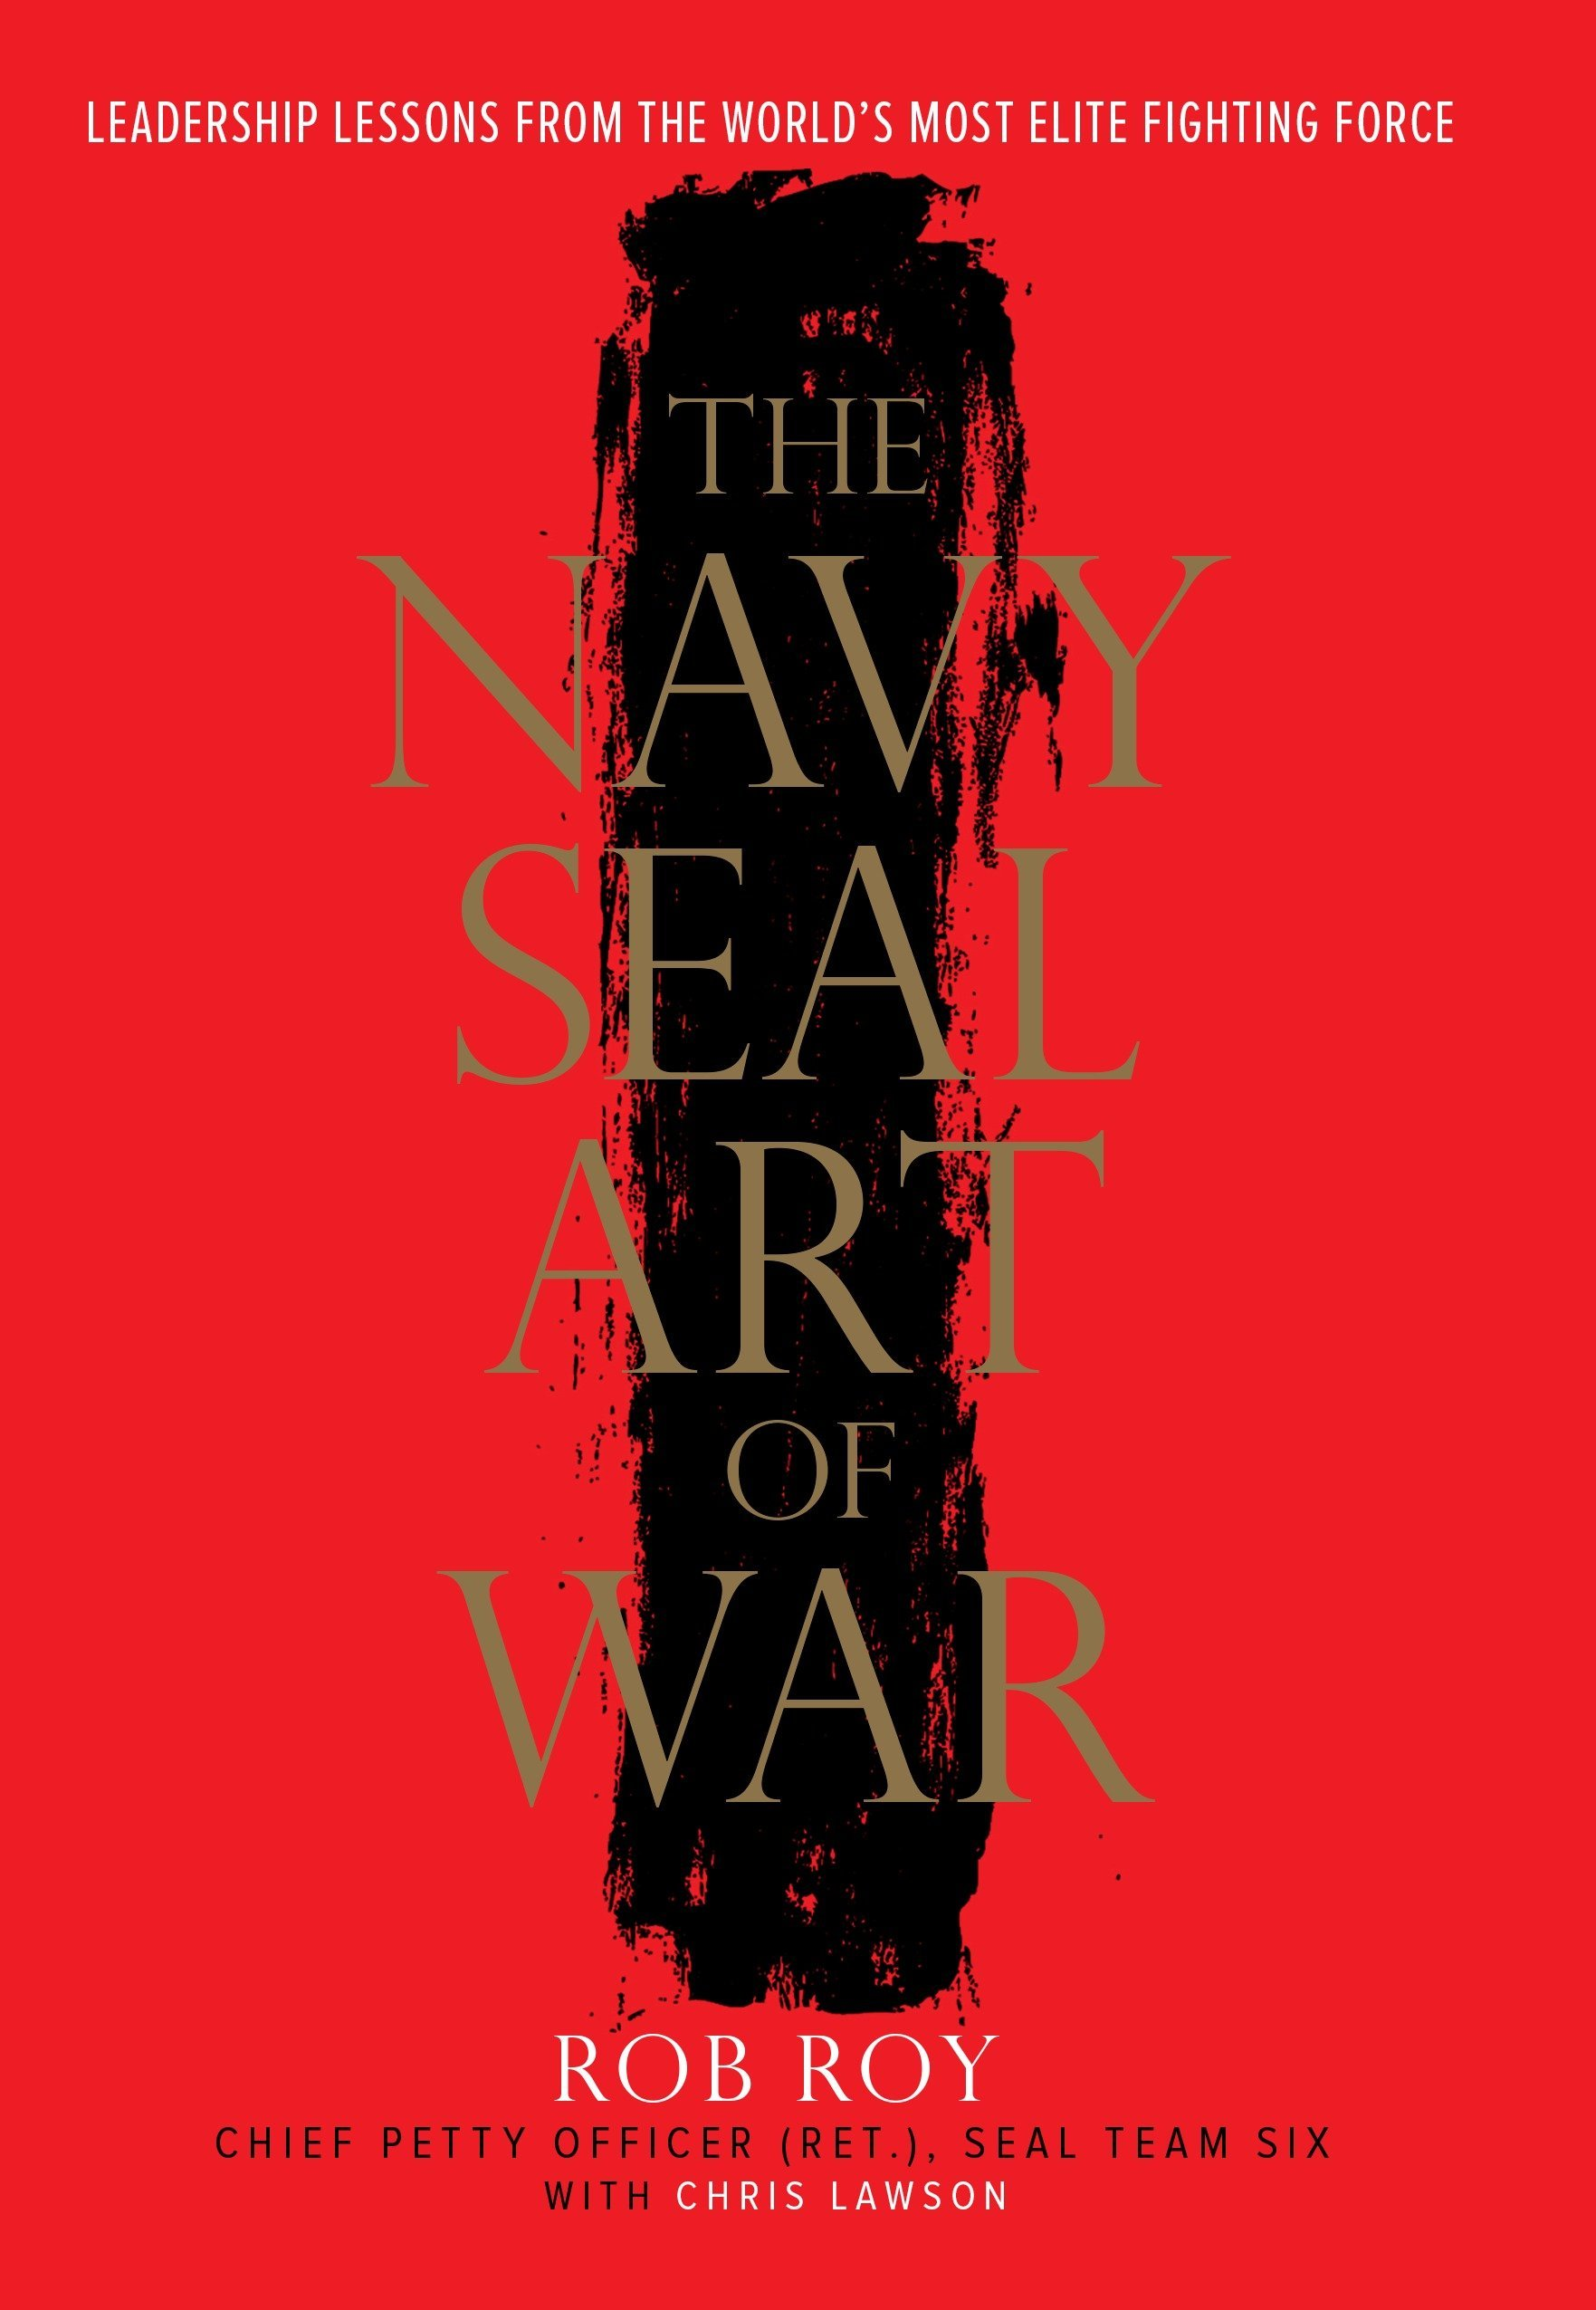 Download The Navy SEAL Art of War: Leadership Lessons from the World's Most Elite Fighting Force ebook